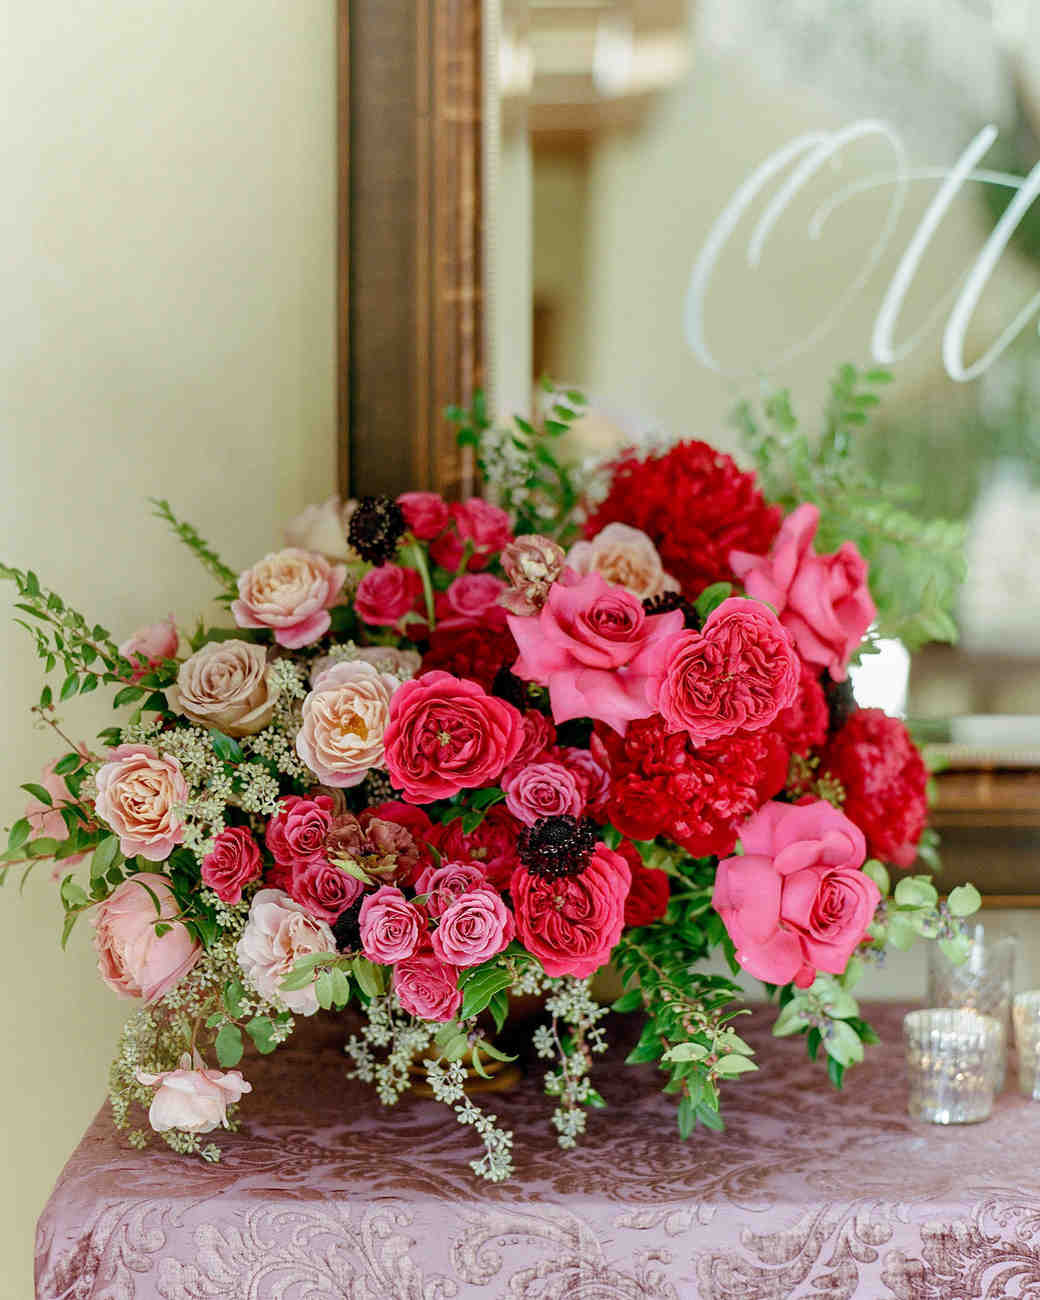 tillie dalton wedding flowers